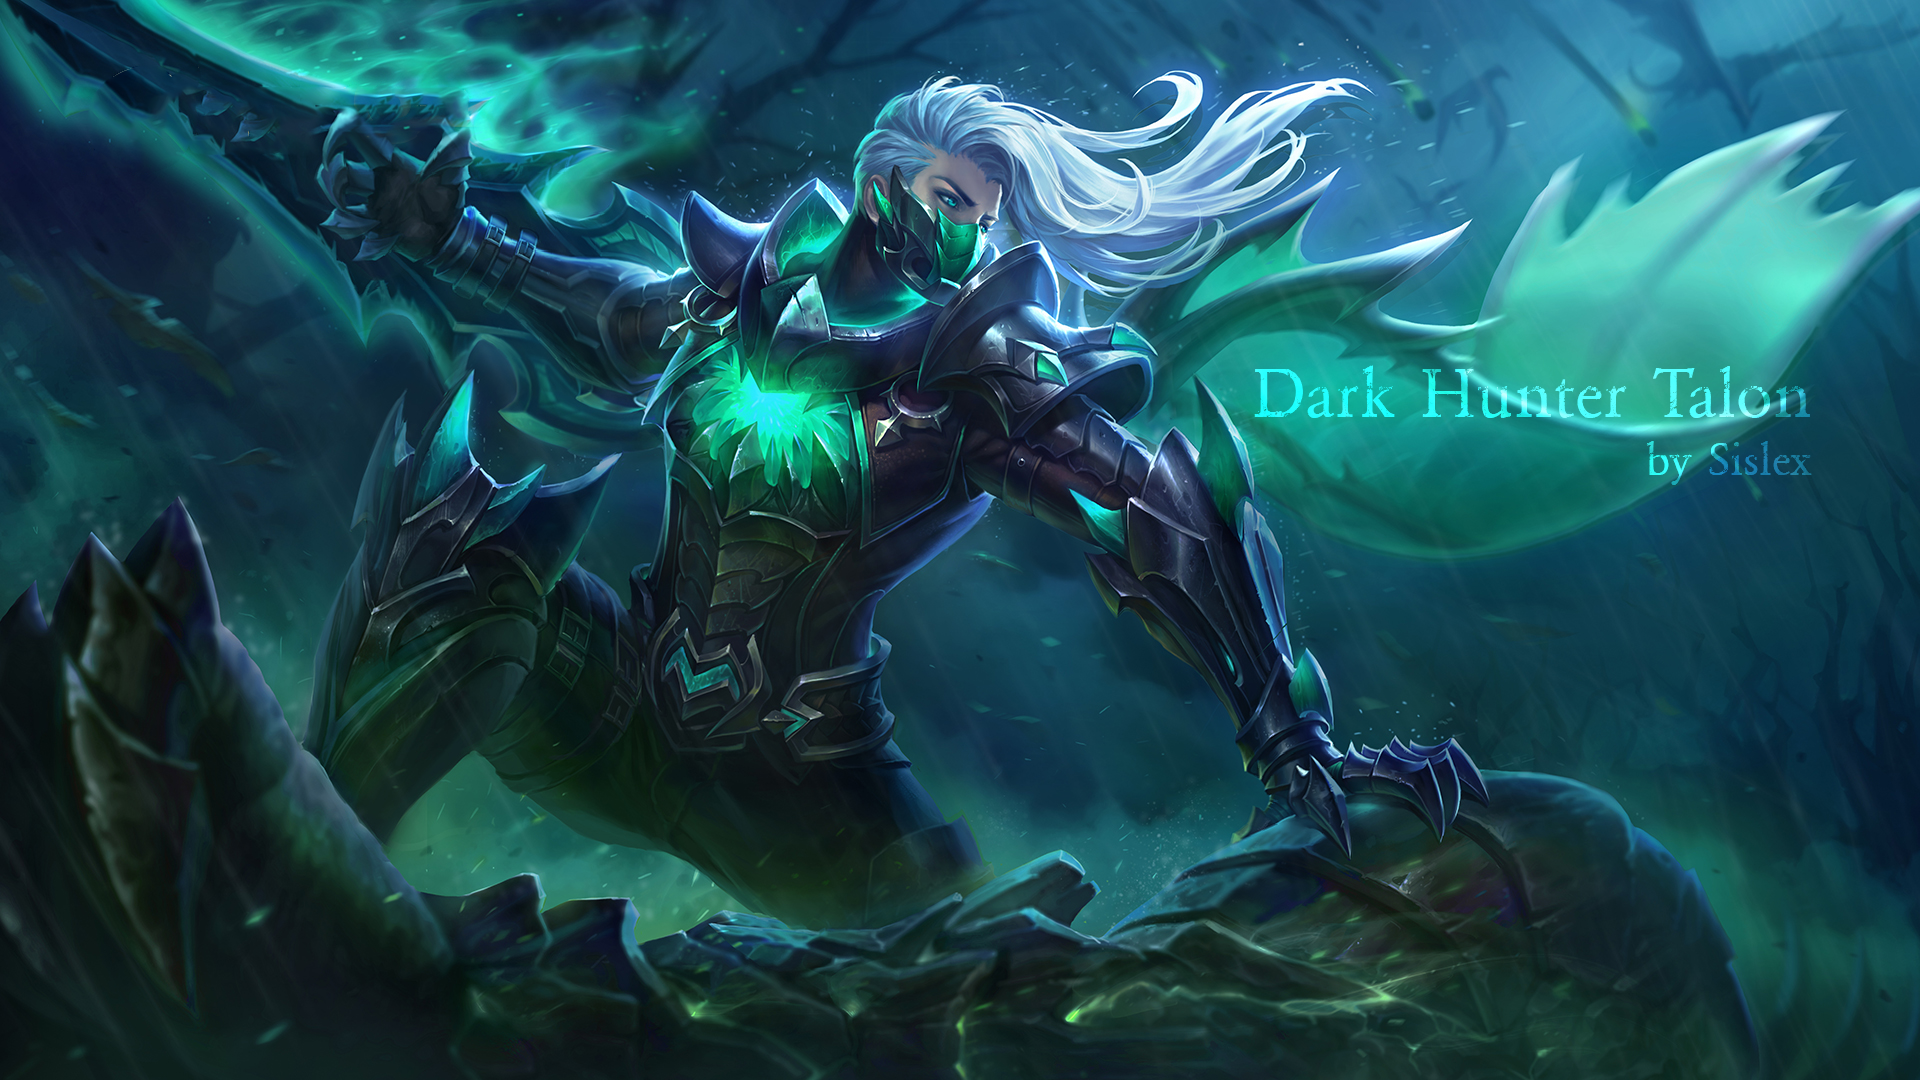 Dark Hunter Talon